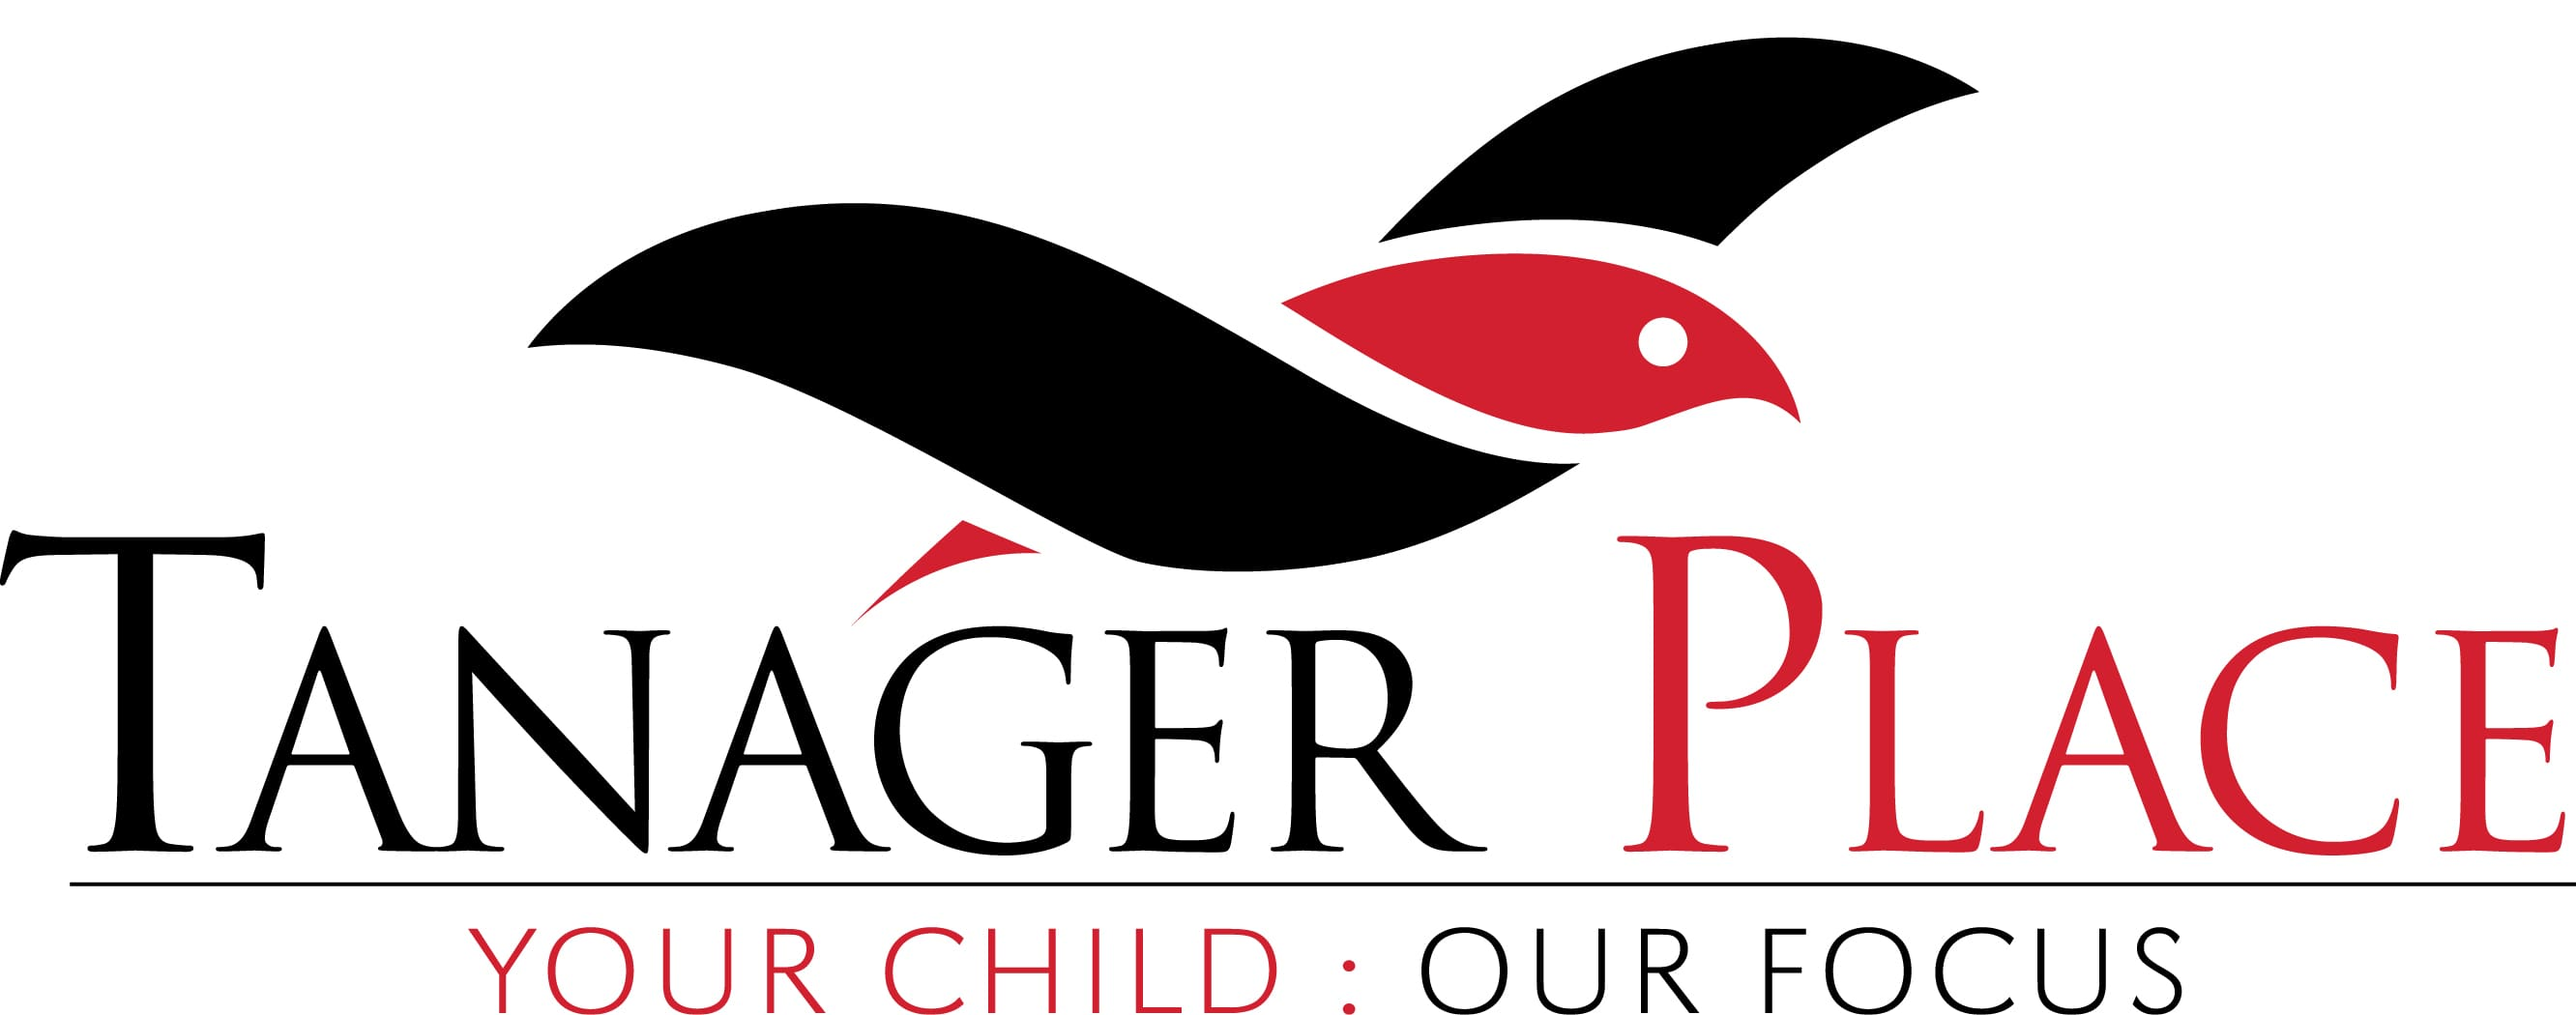 Tanager Place logo.jpg